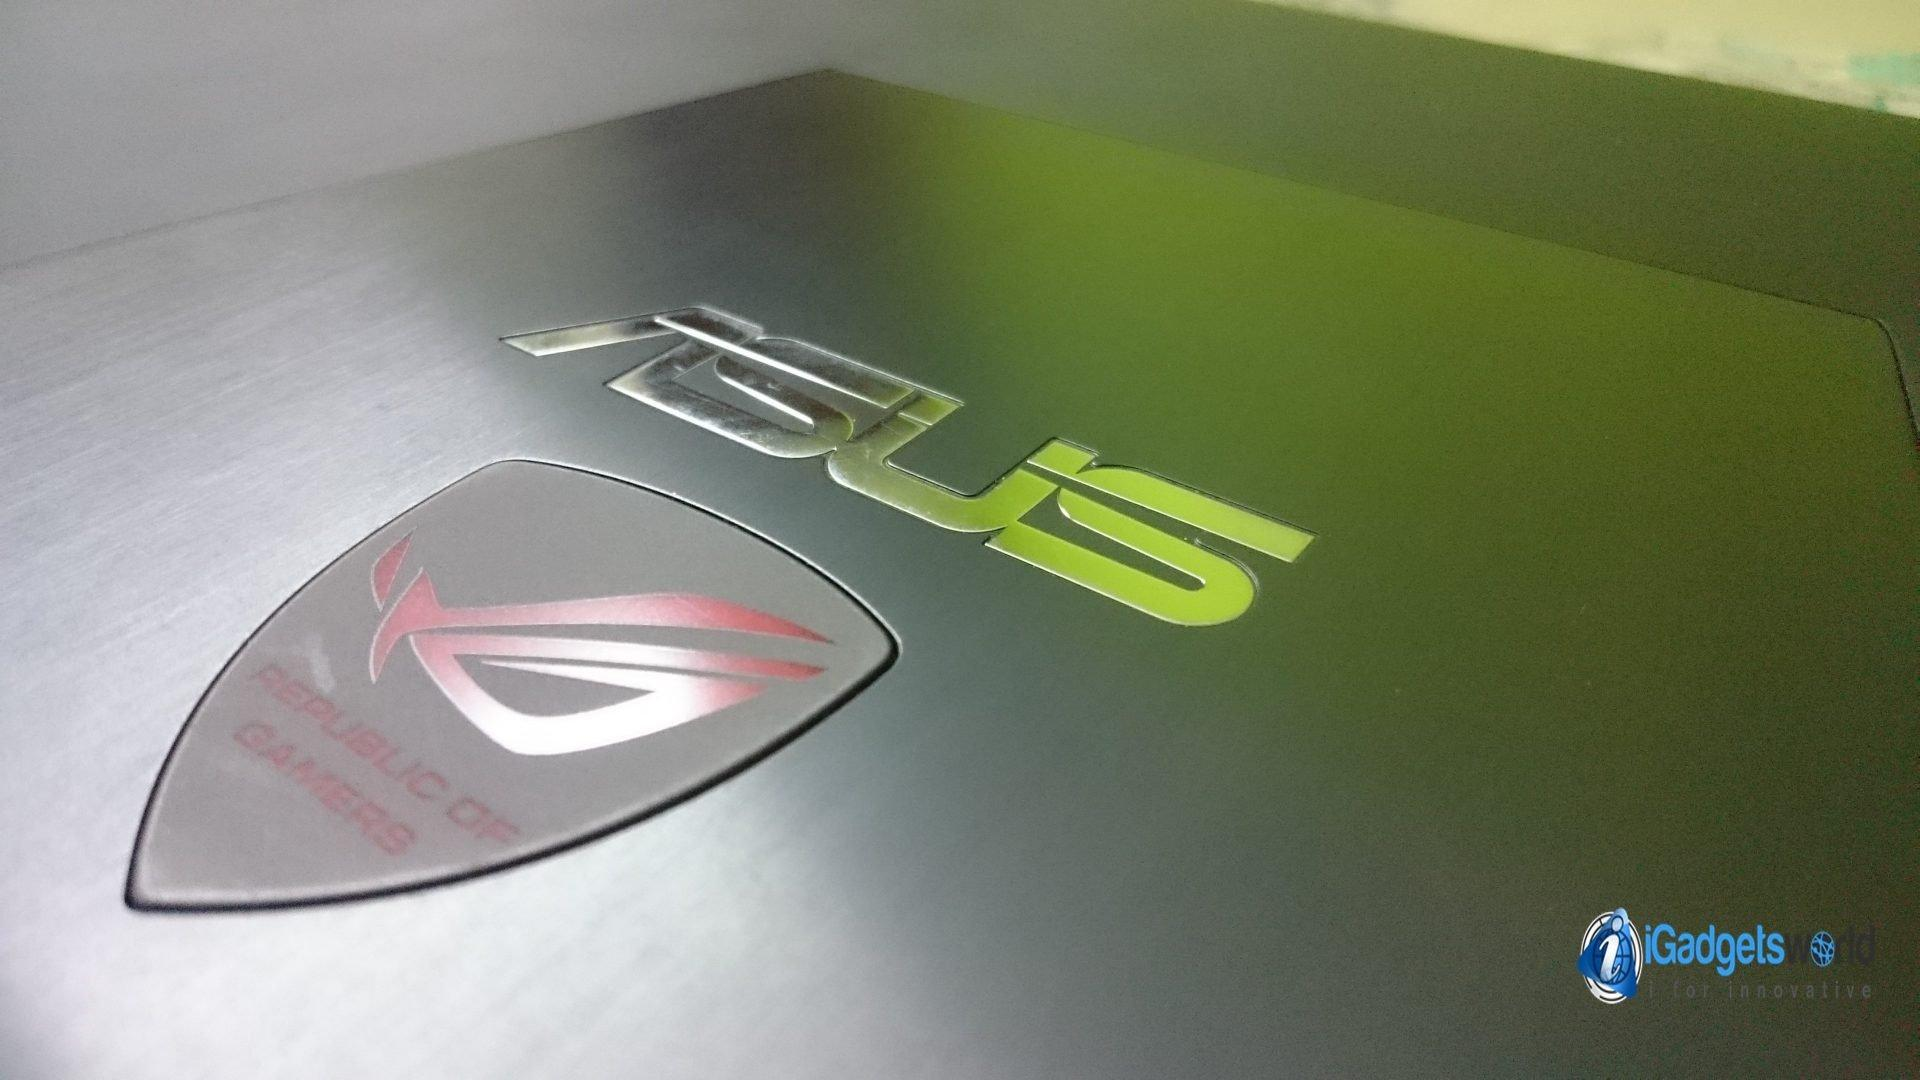 Asus ROG G751J Review: A Slightly Overpriced Ultra High-End Gaming Laptop - 2